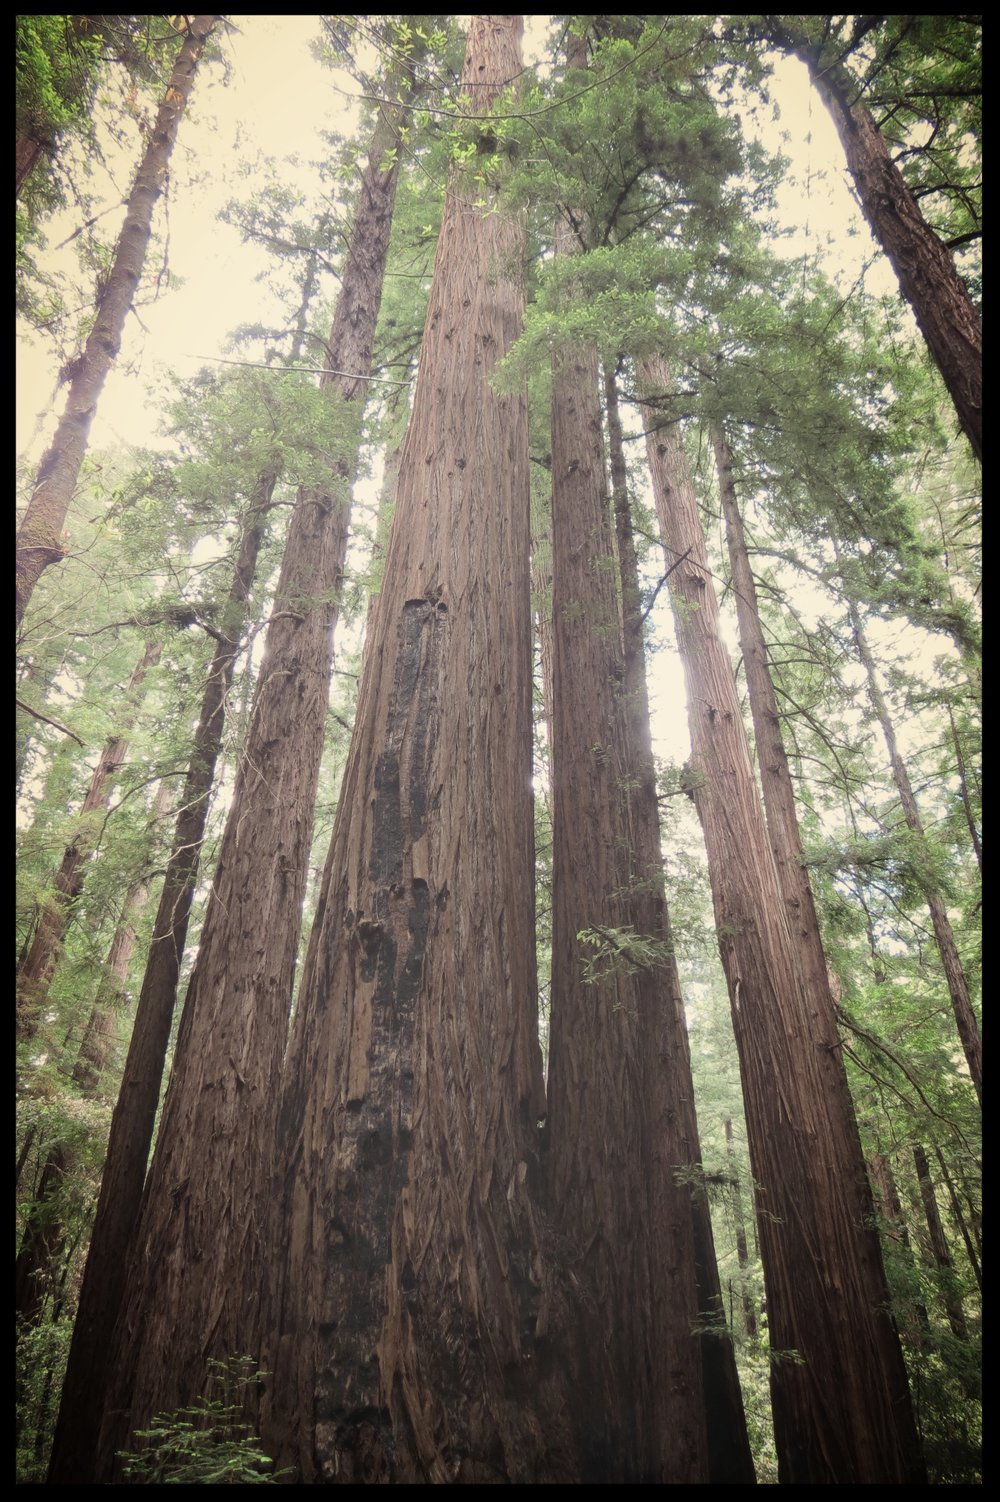 redwoods reaching toward the sky. contact me for information about fertility awareness, body literacy, childbirth education, lactation support, pregnancy loss and abortion support, herbalism.